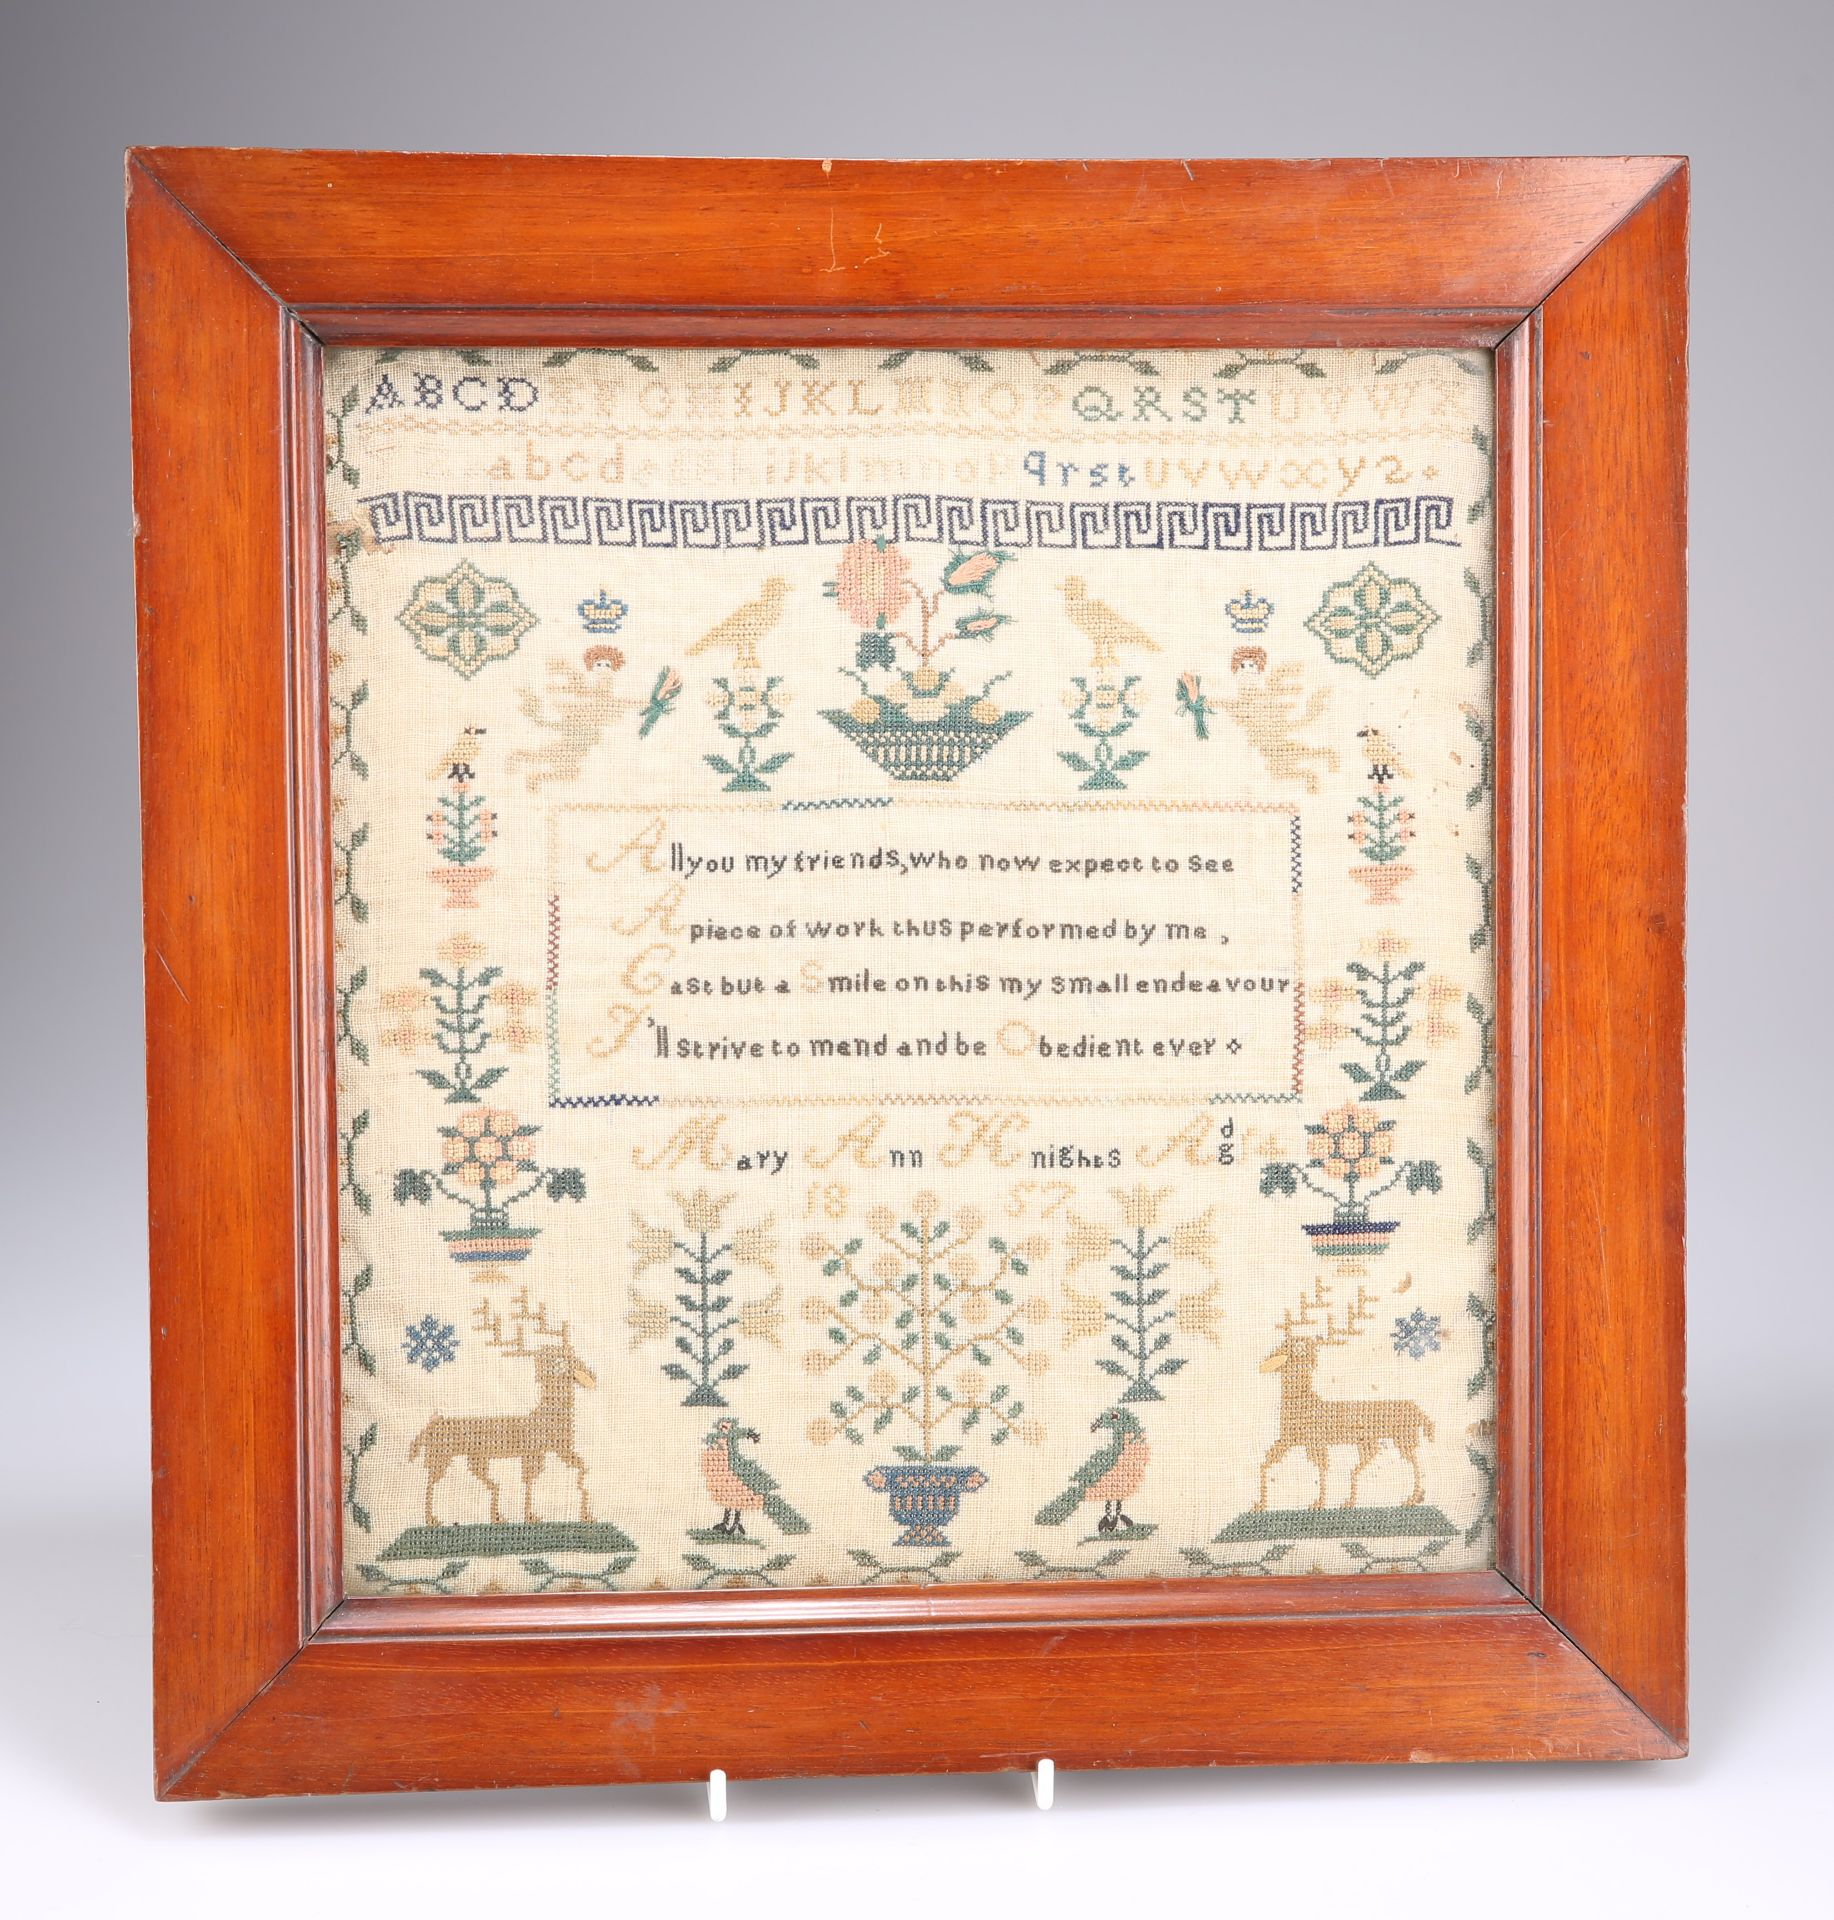 A 19TH CENTURY ALPHABET AND VERSE SAMPLER